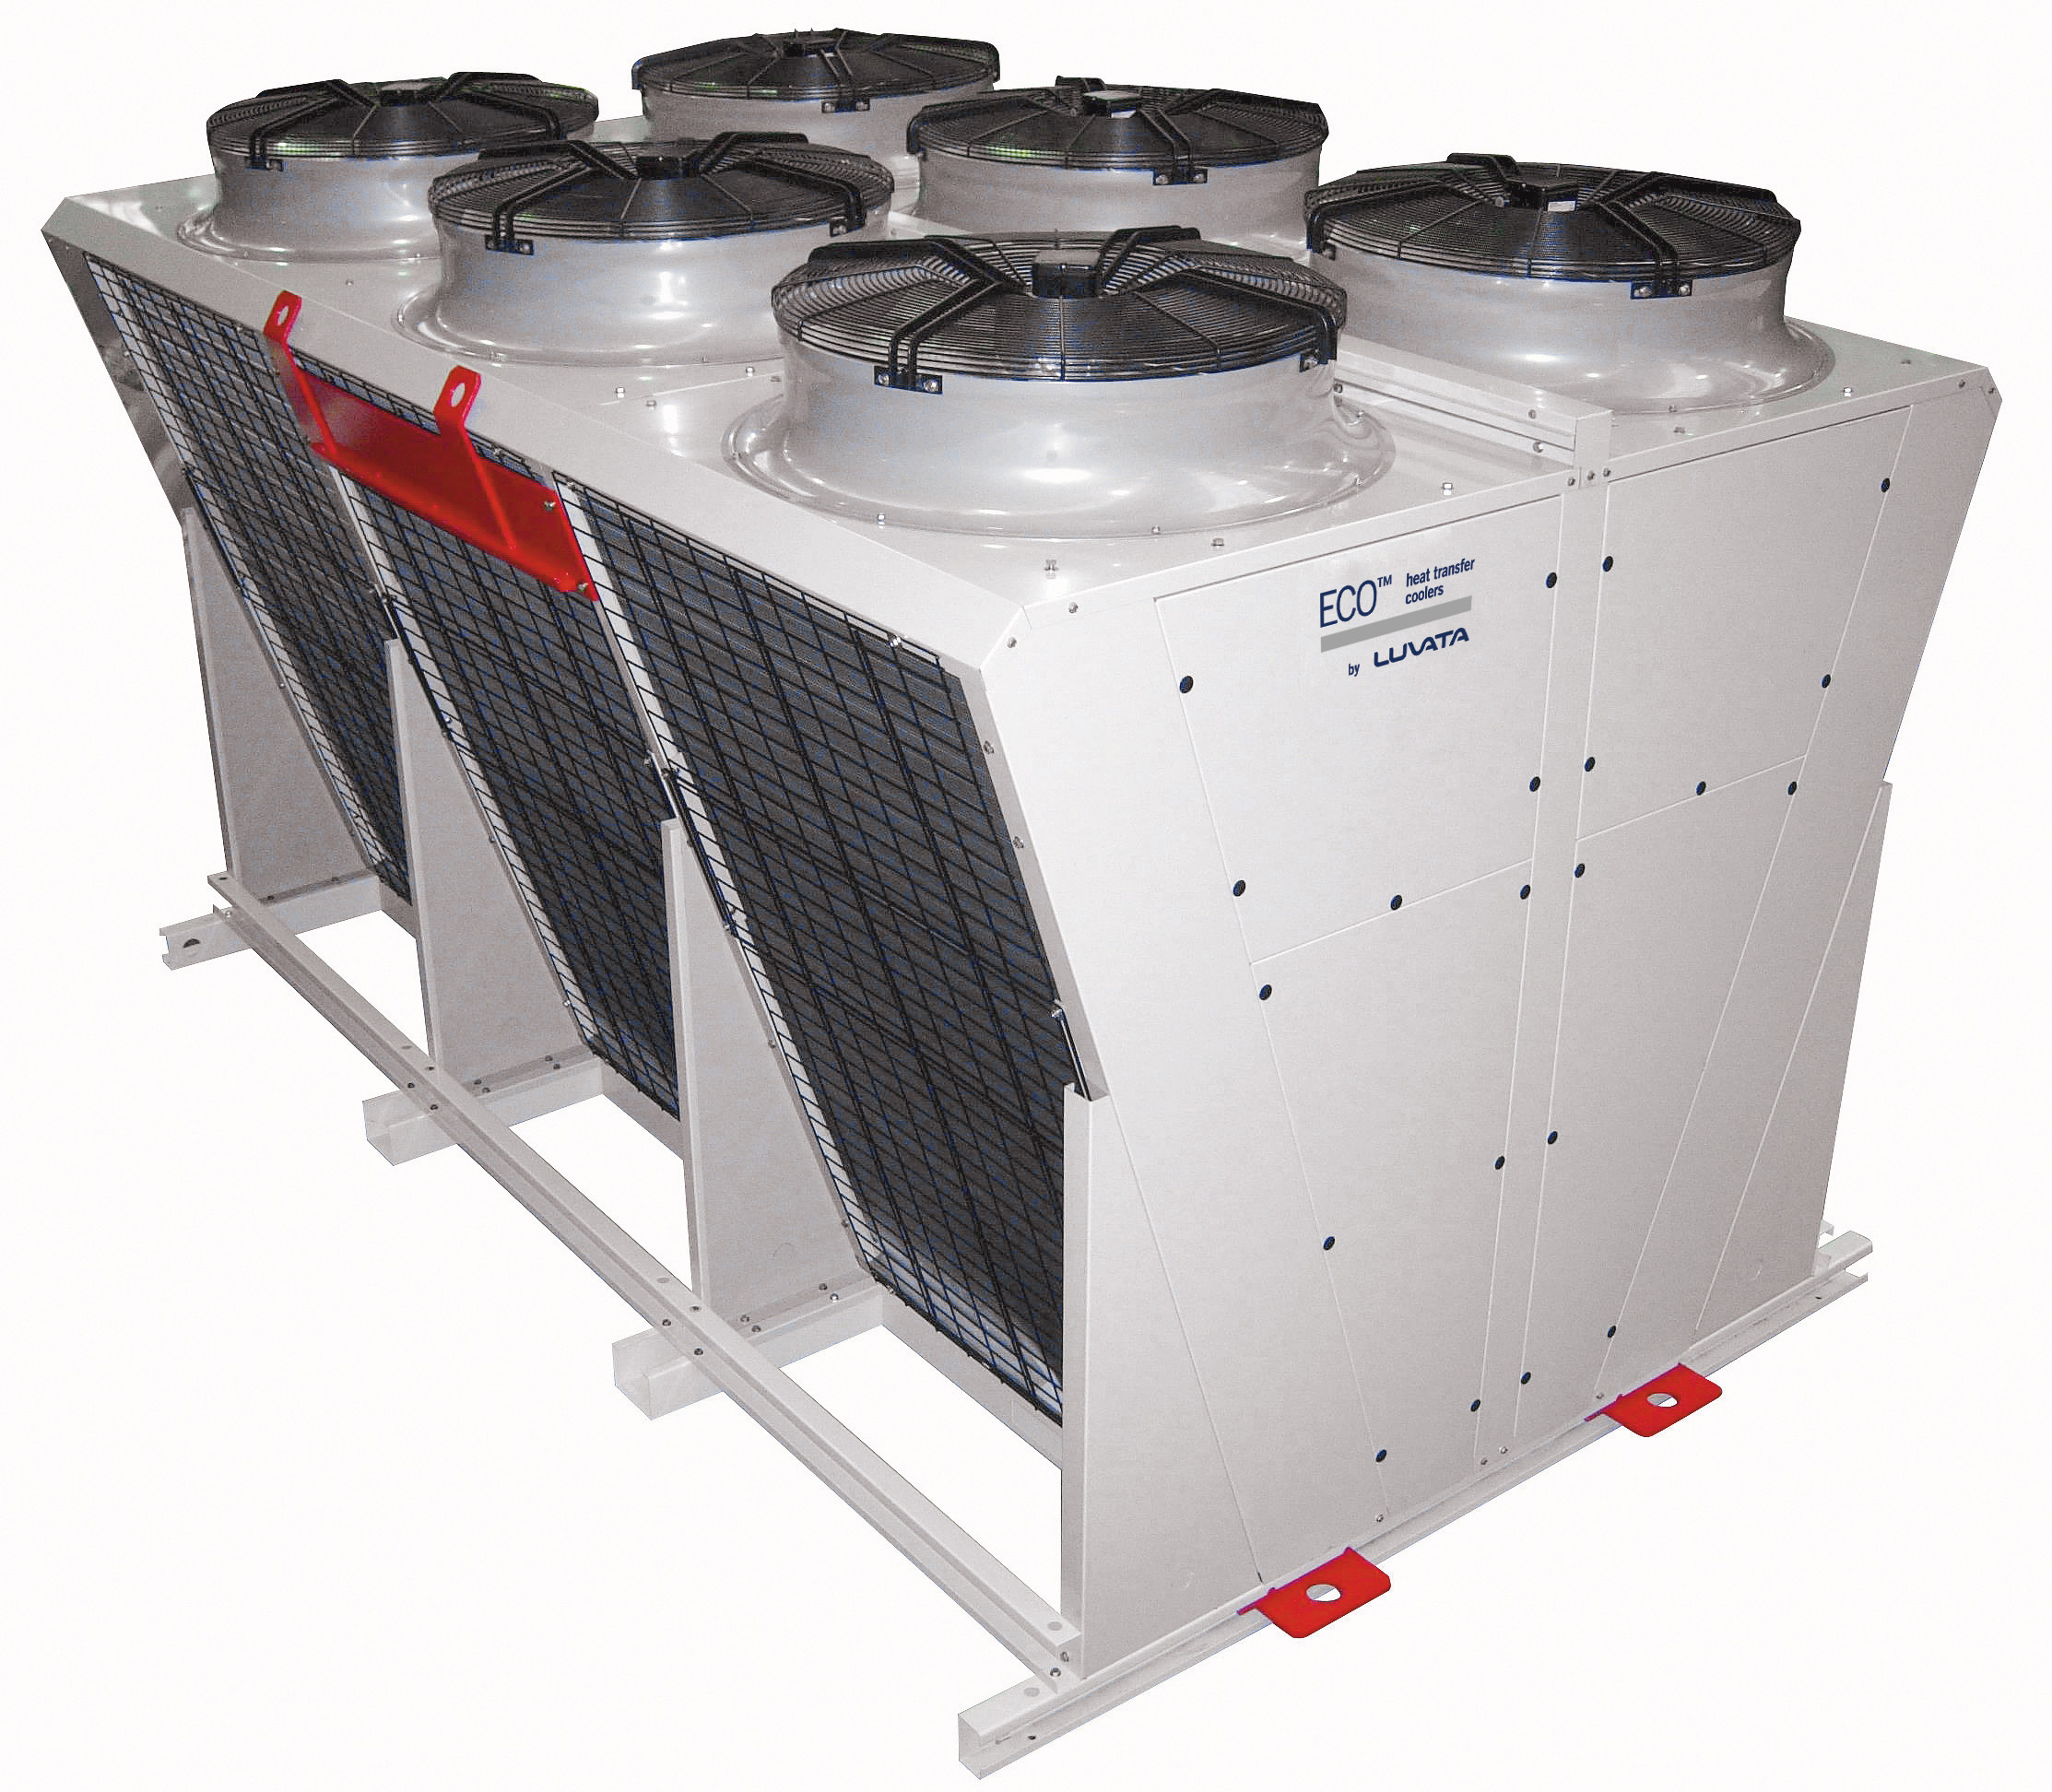 Brian Bazzett - VCC_Air cooled condensers-dry coolers and gas coolers two coils with V config for industrial apps-suitable for containers